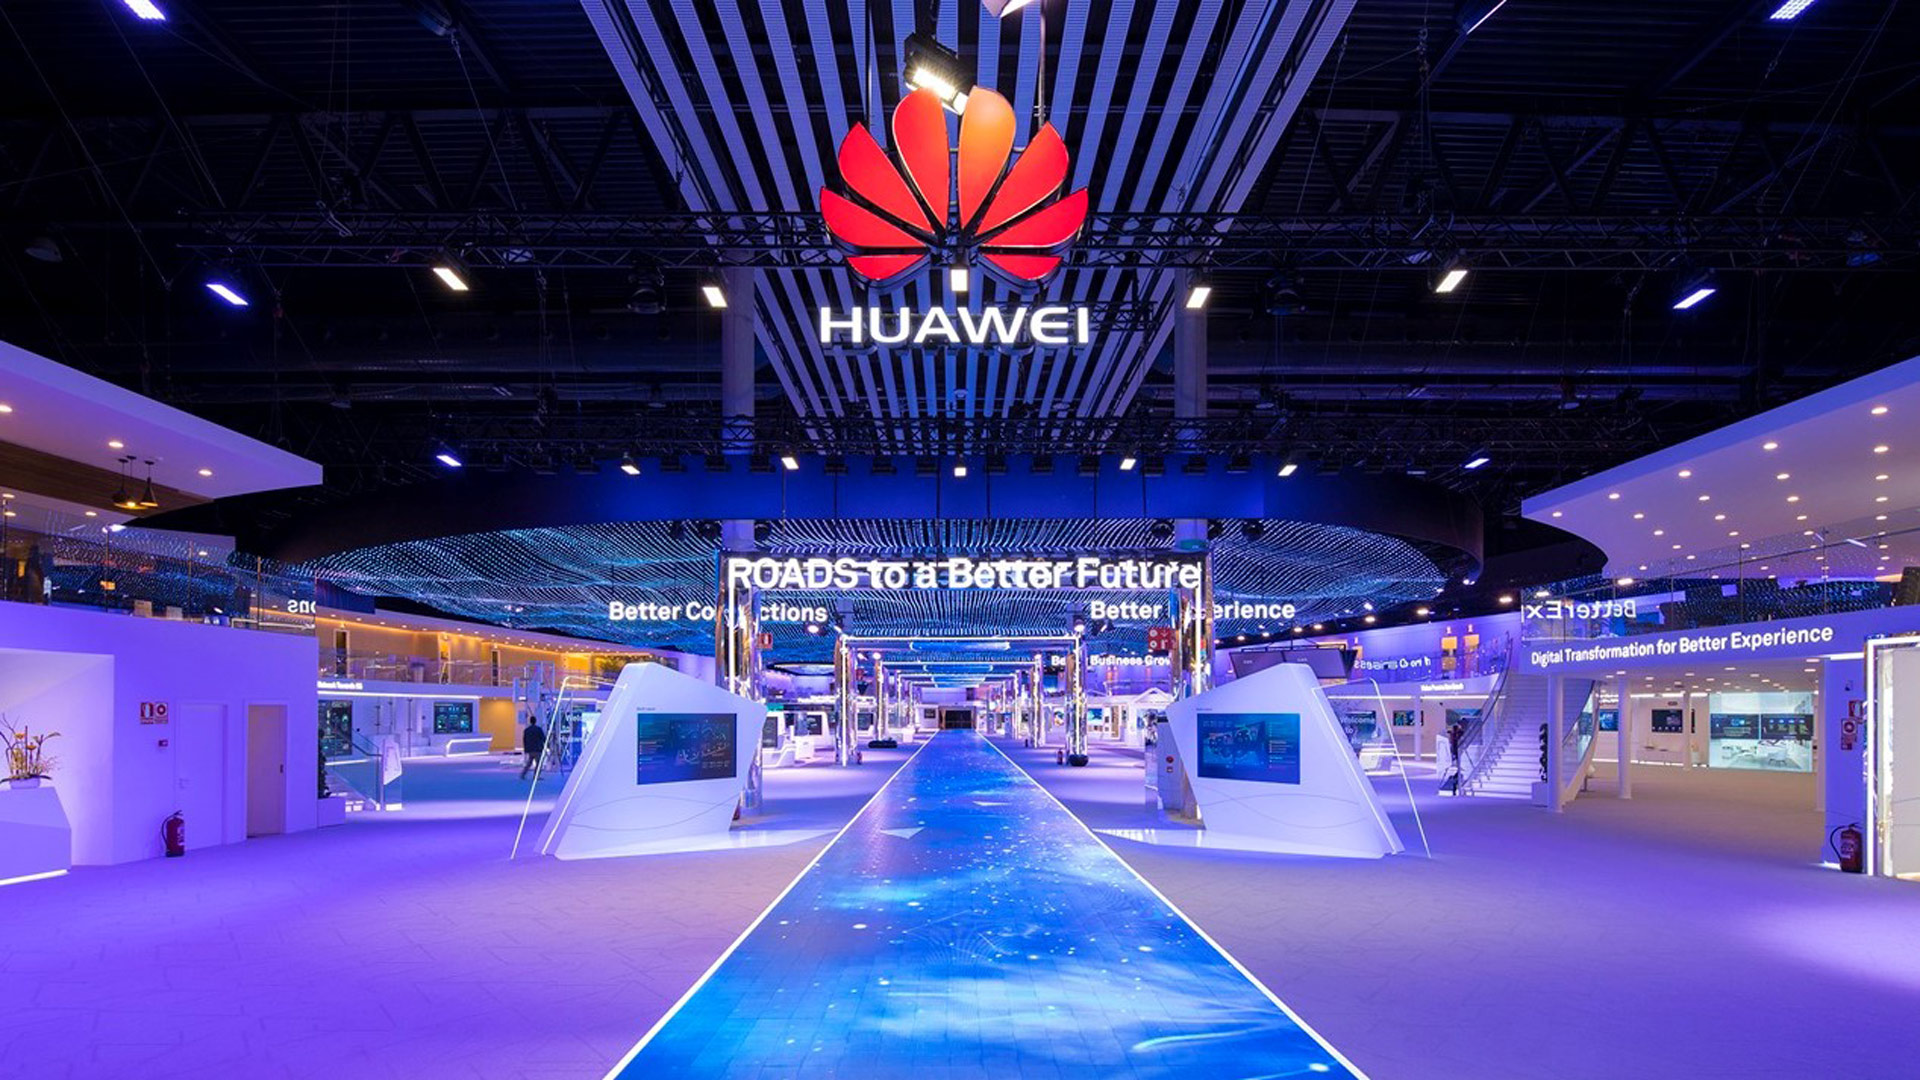 Chinese Tech Giant Huawei Aims to Commercialize AR Headset in 1-2 Years